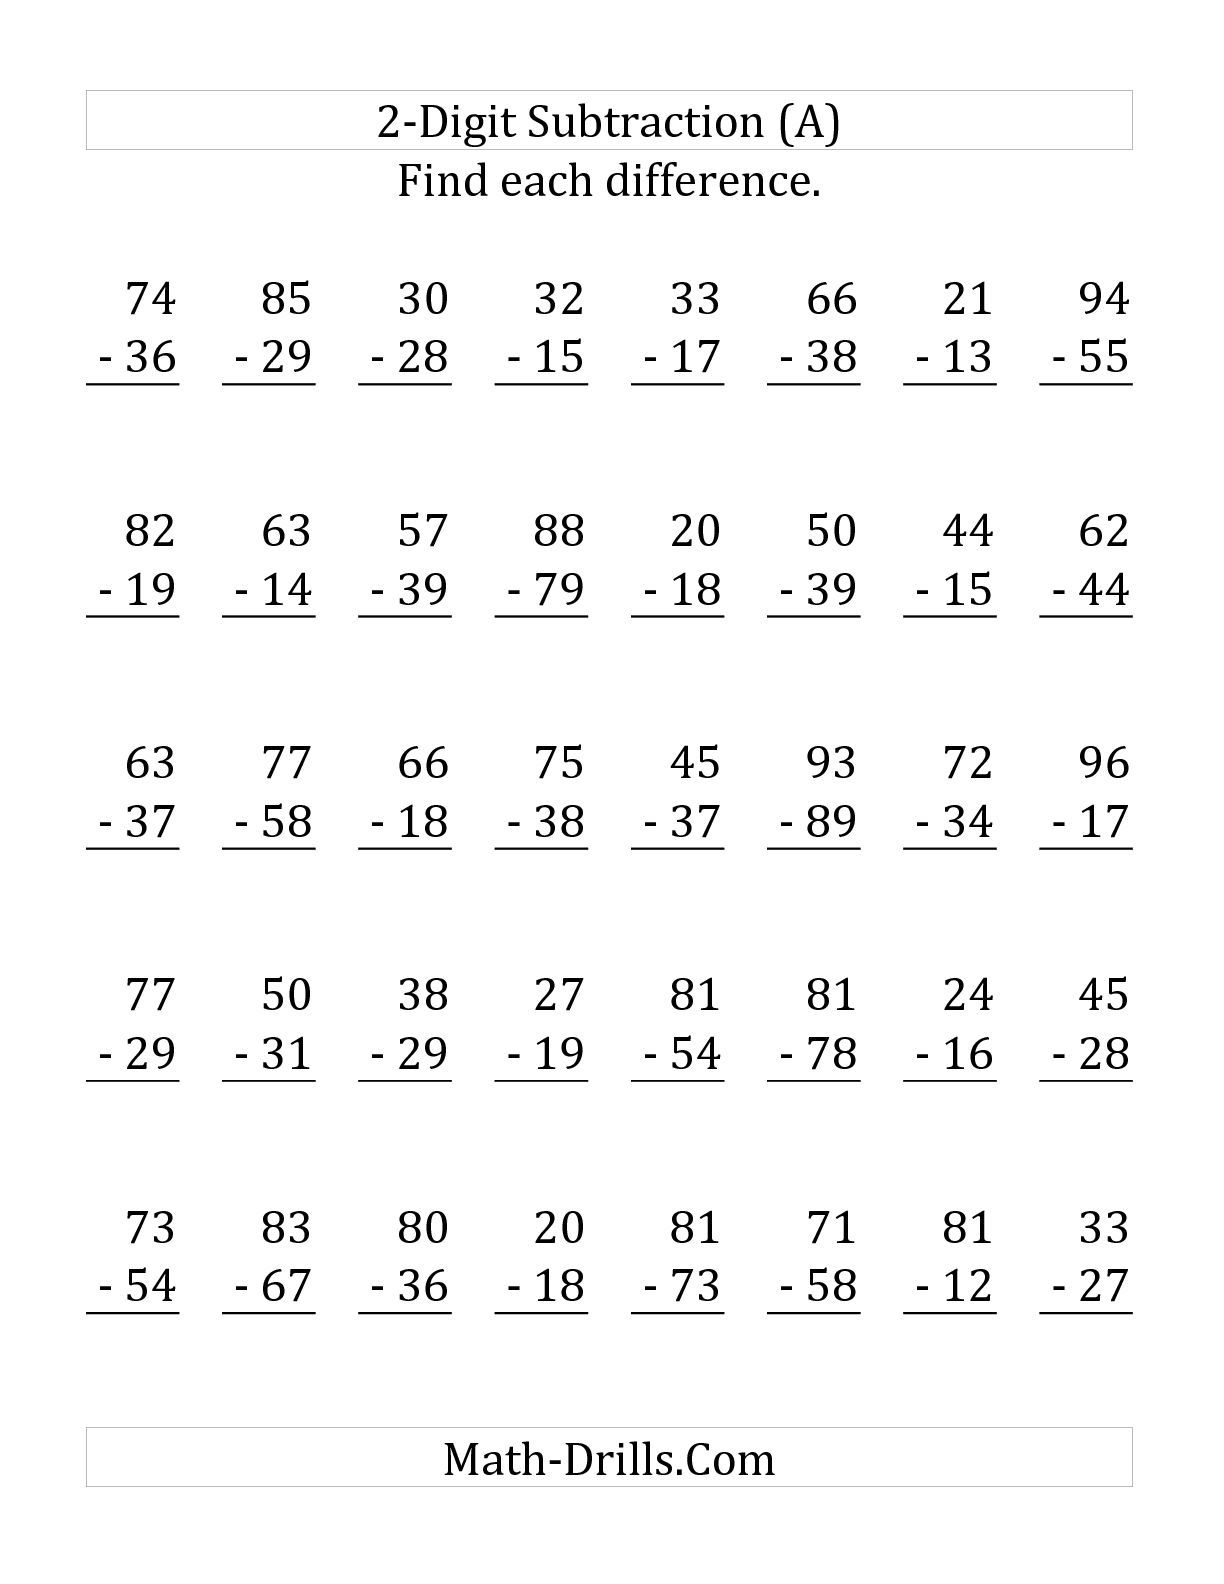 This Subtraction Worksheet may be printed, downloaded or